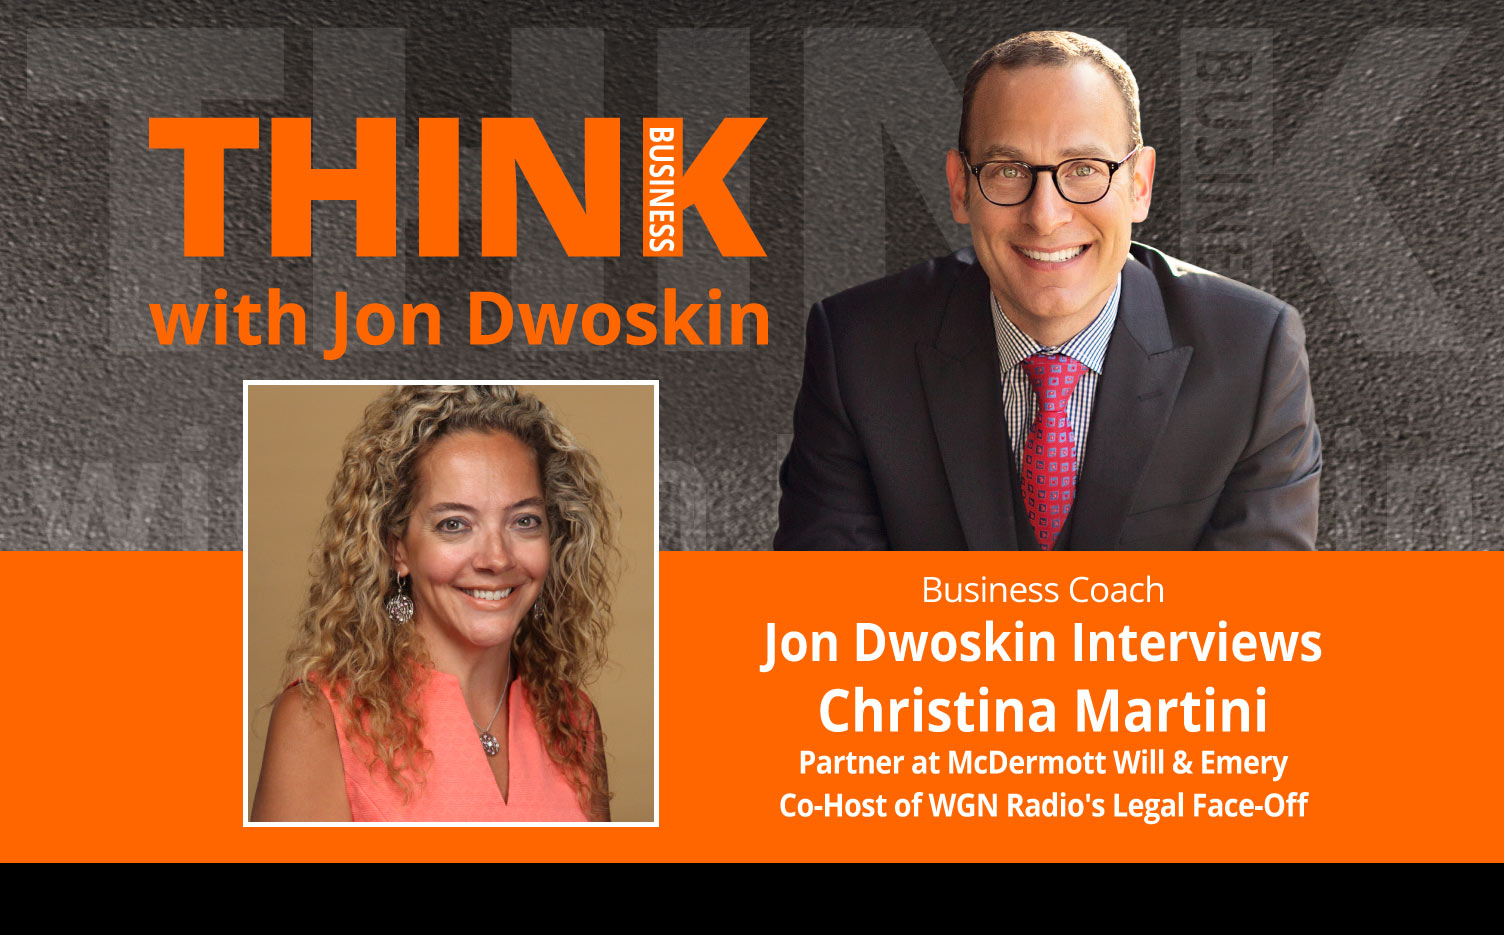 THINK Business Podcast: Jon Dwoskin Interviews Christina Martini, Partner at McDermott Will & Emery, Co-Host of WGN Radio's Legal Face-Off